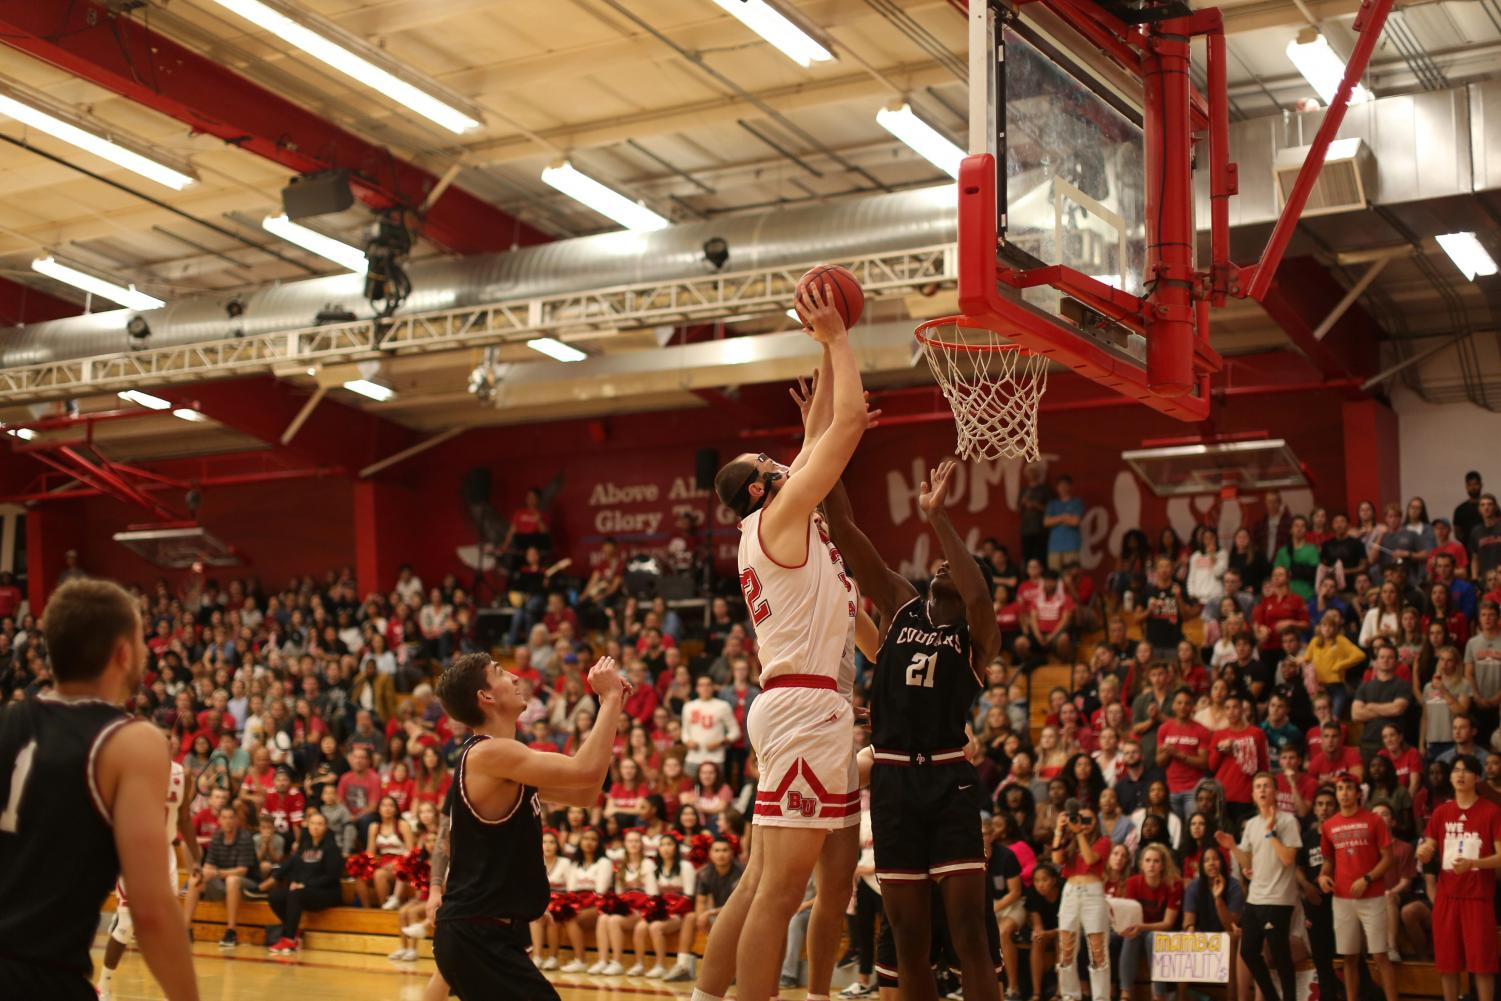 Solomon Ruddell, a sophomore undecided major with a forward position, makes a basket.